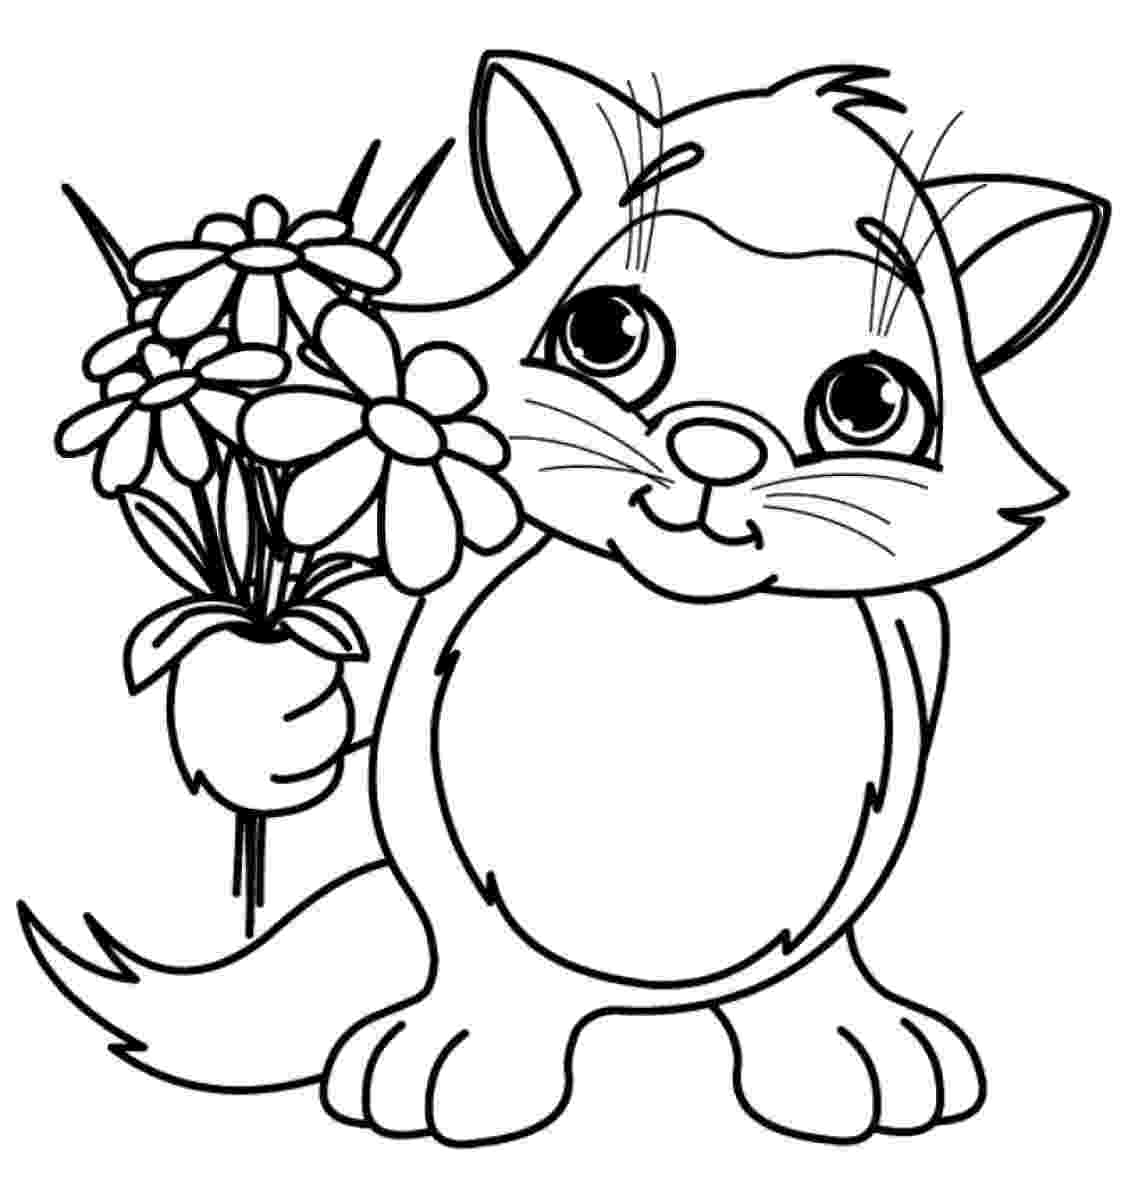 flower coloring book roses flowers coloring page free printable coloring pages flower coloring book